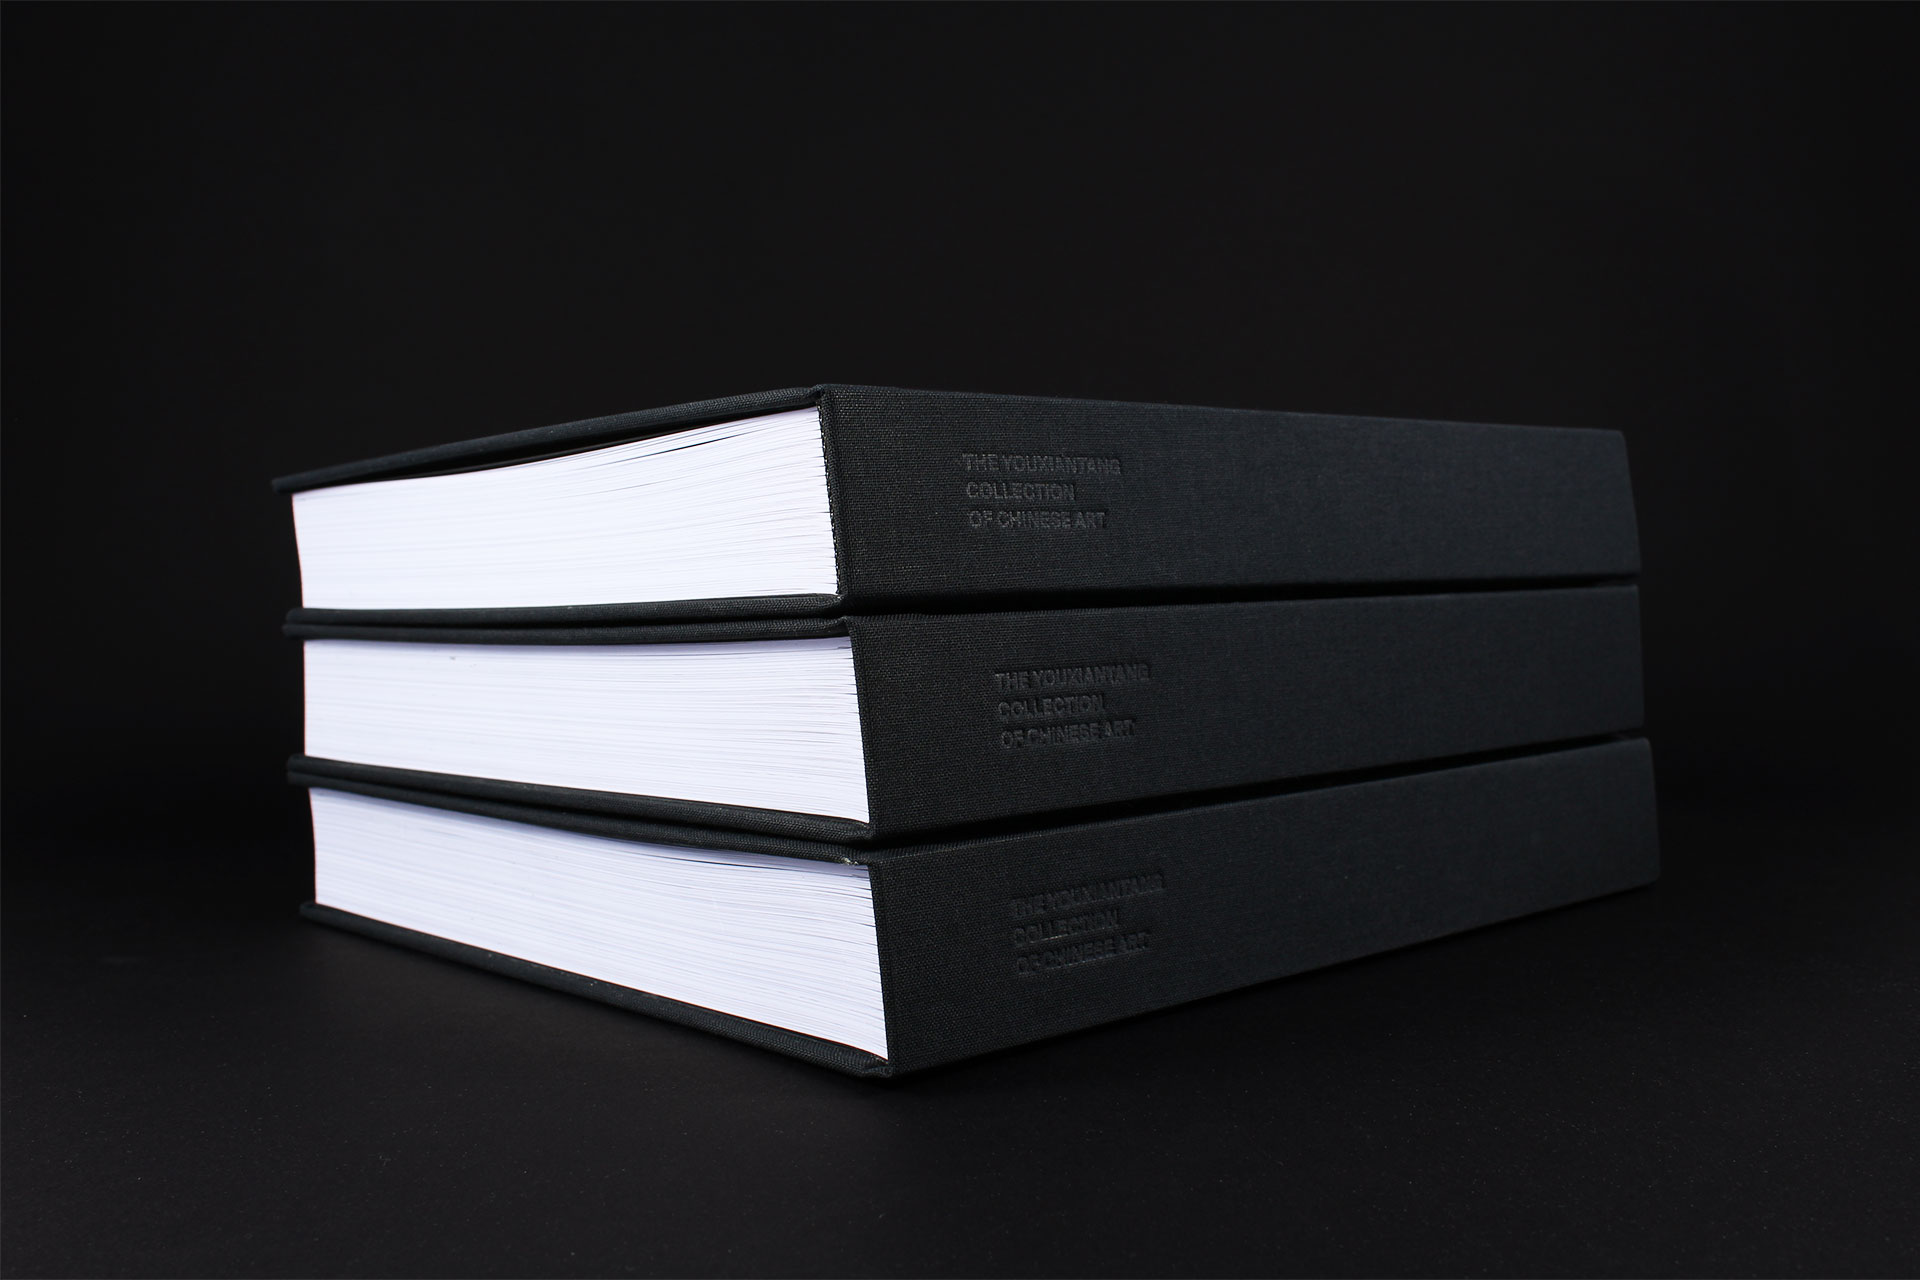 Youxiantang Collection book design spine